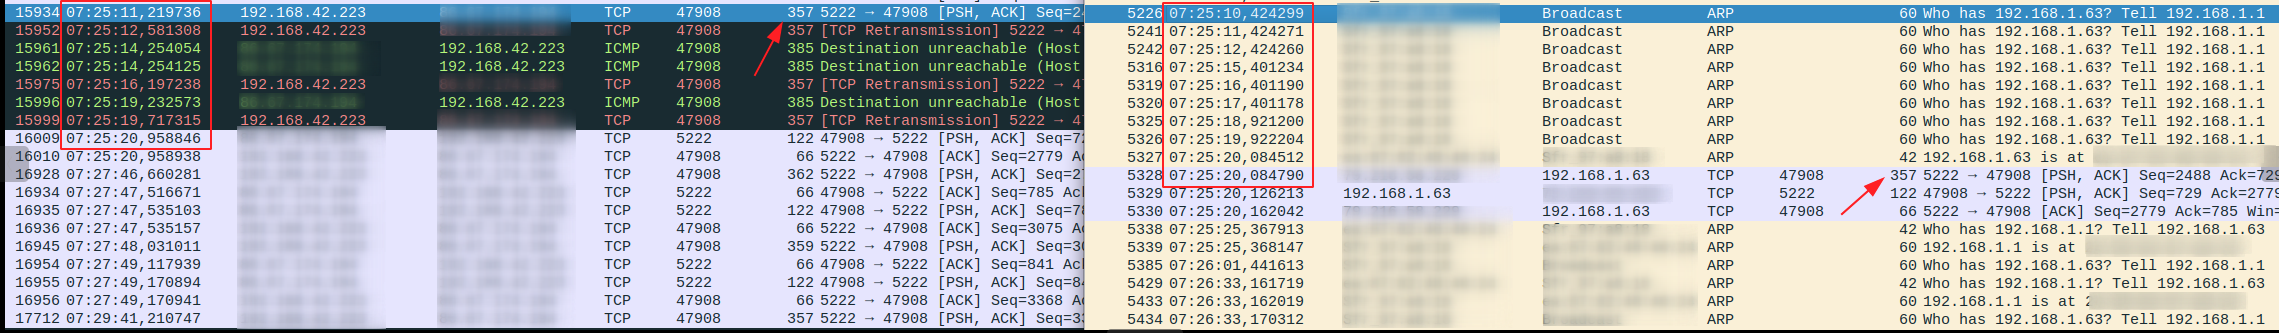 Image: Wireshark trace of delayed message forwarding